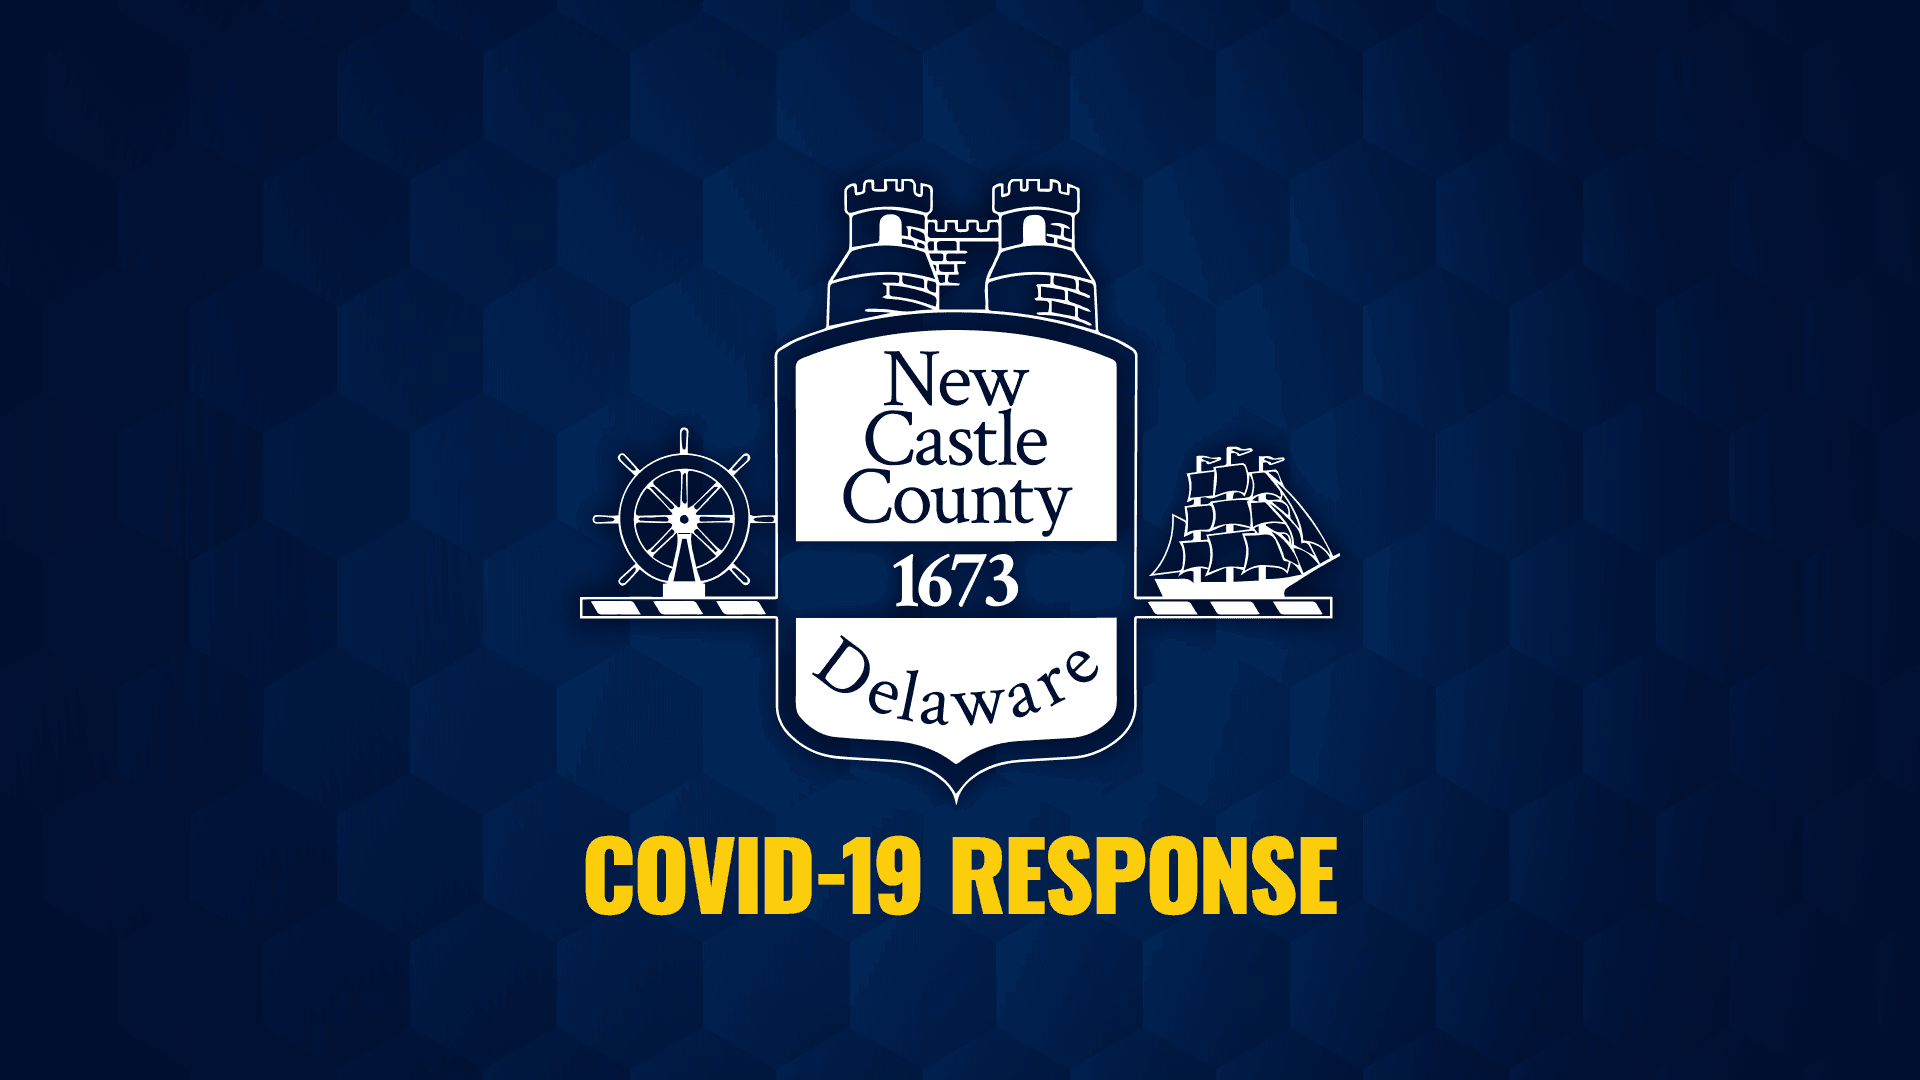 New Castle County COVID-19 Response